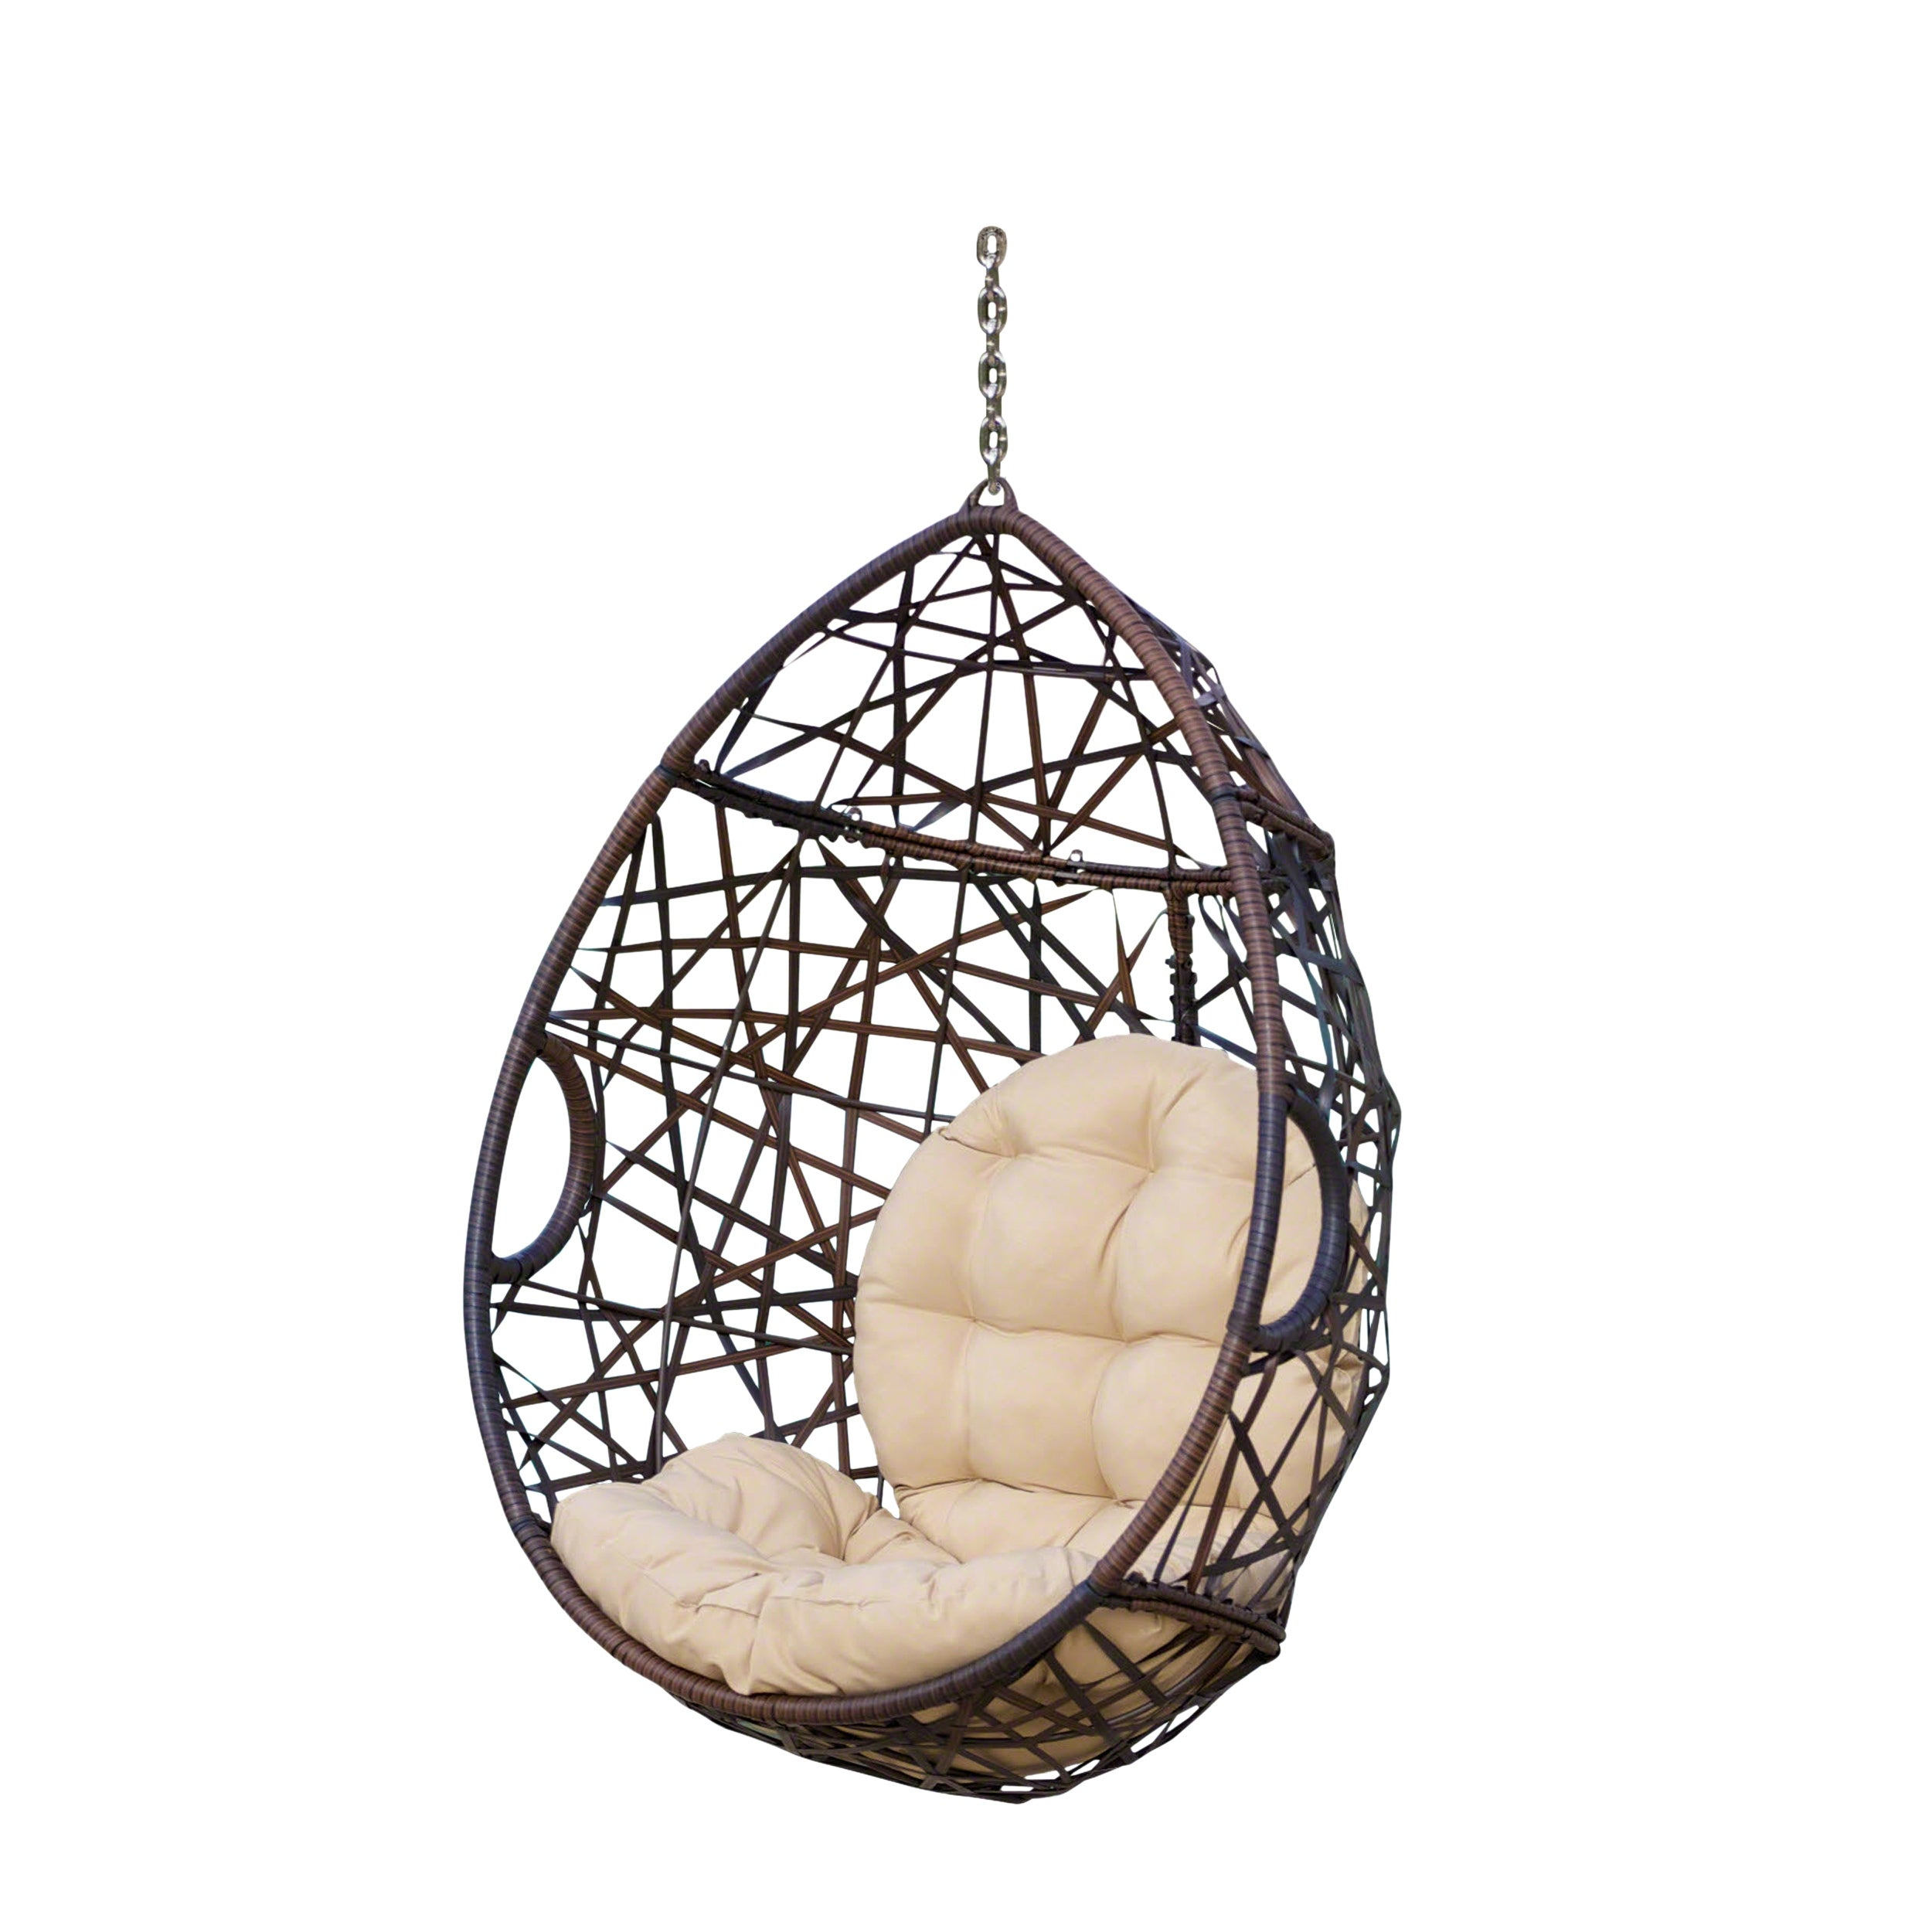 Cayuse Teardrop Hang Chair Stand Not Included On Sale Overstock 31198911